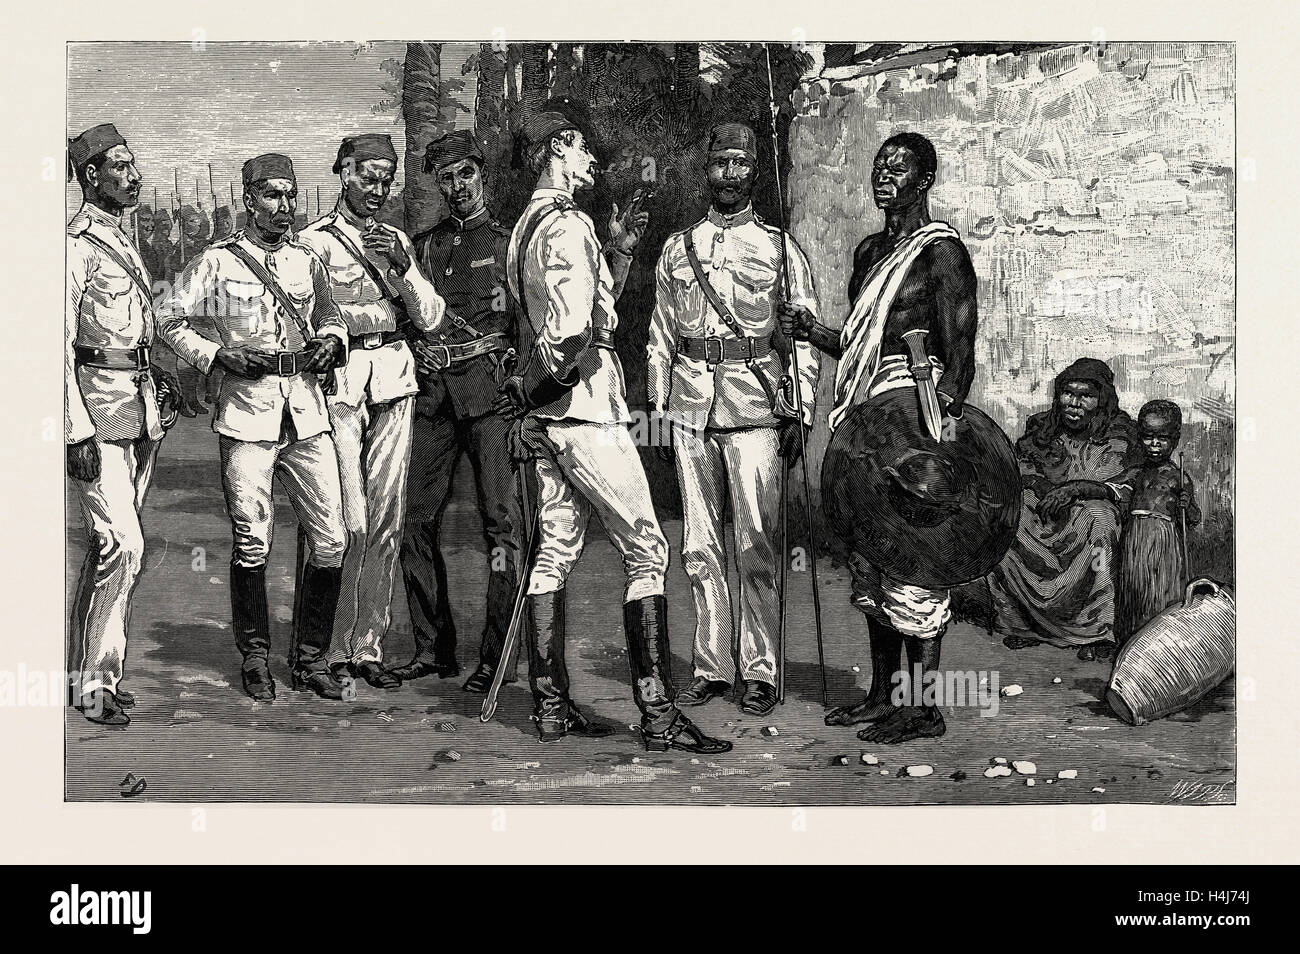 THE DERVISH ADVANCE, 1889: OFFICER OF THE EGYPTIAN ARMY RECRUITING SOUDANESE - Stock Image